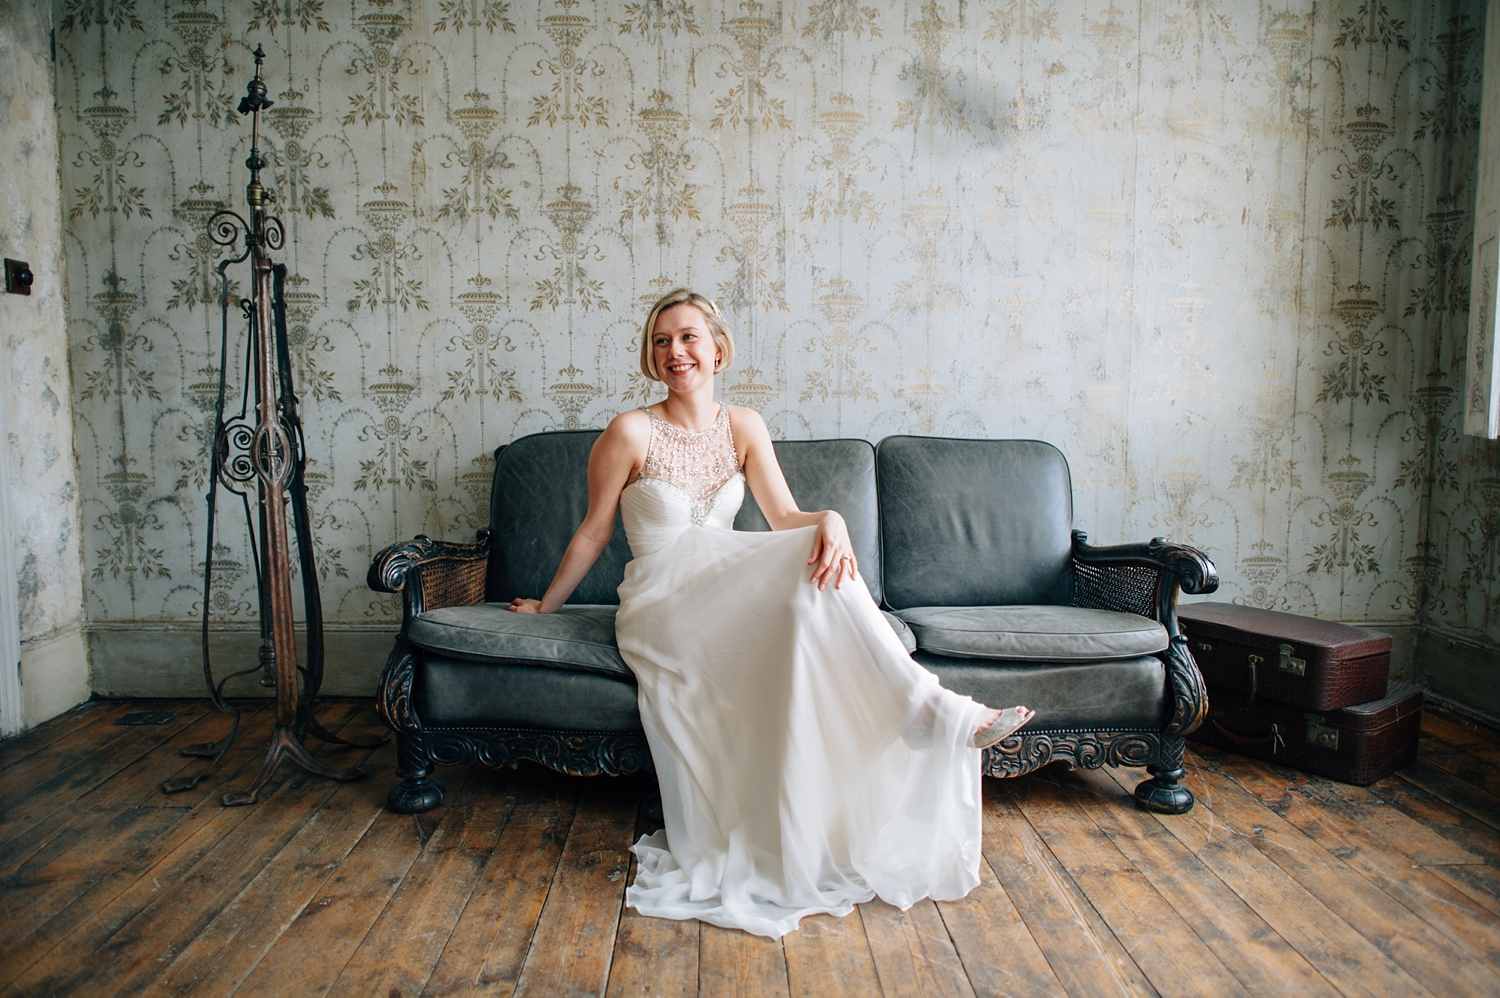 0121-lisa-devine-alternative-wedding-photography-london-hackney-dalston-london-photography-townhall-hotel.JPG